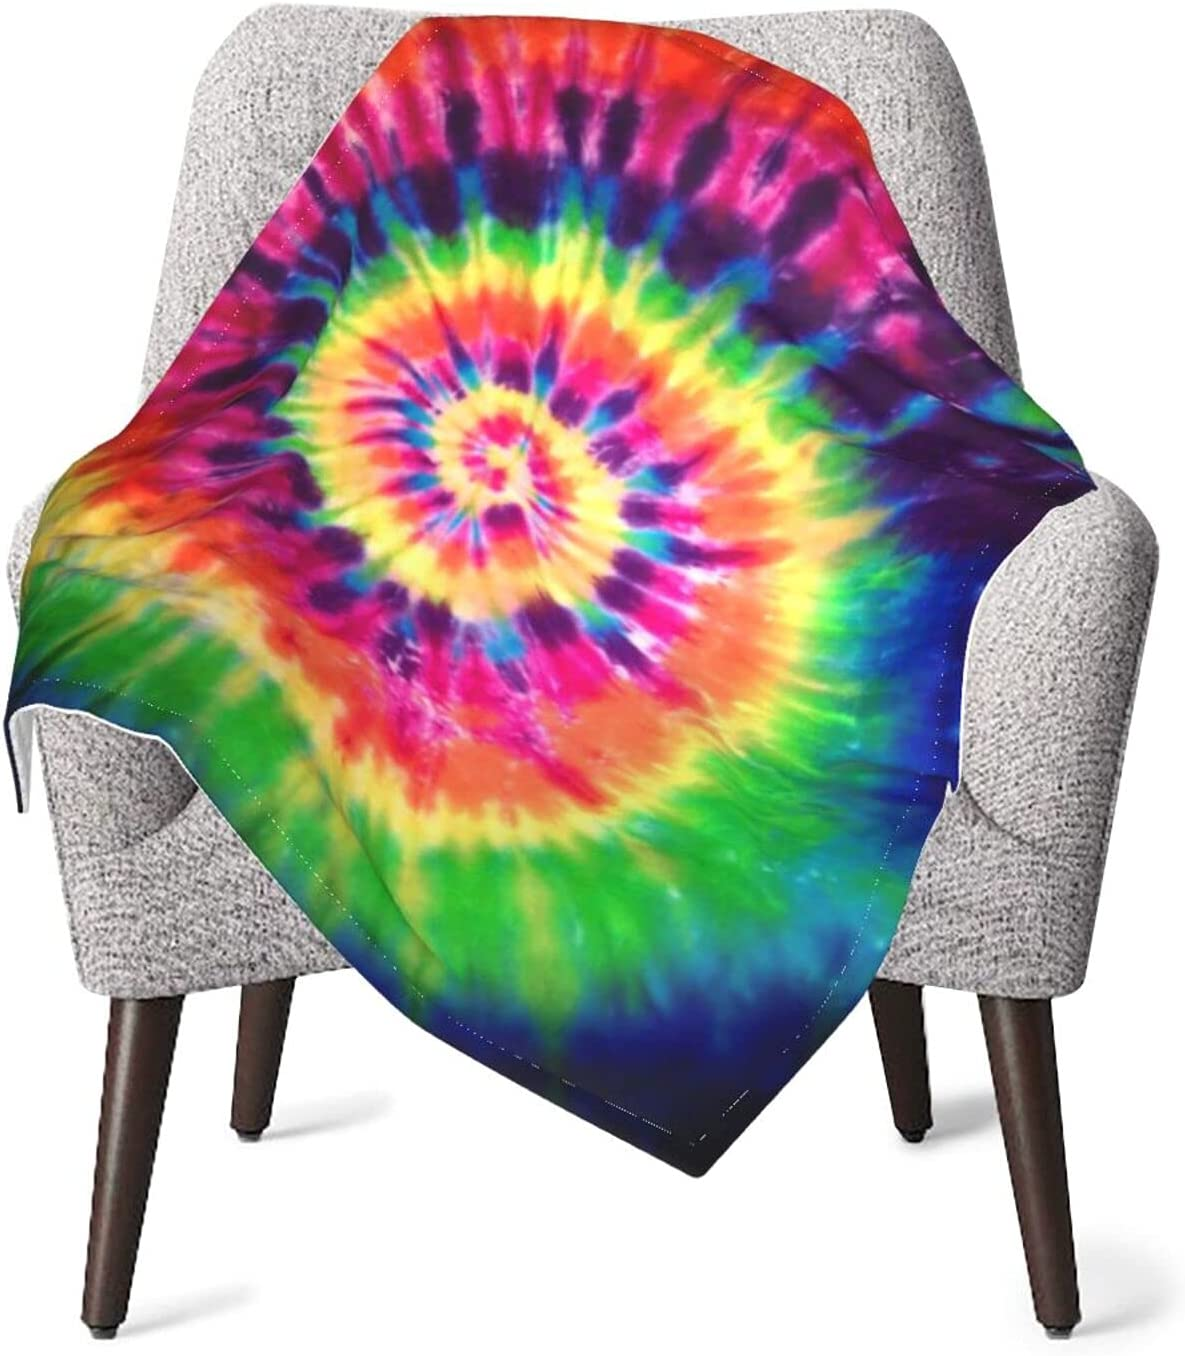 JZDACH Superior Unisex Baby 67% OFF of fixed price Receiving Tie Inf Blankets Peace Dye Rainbow